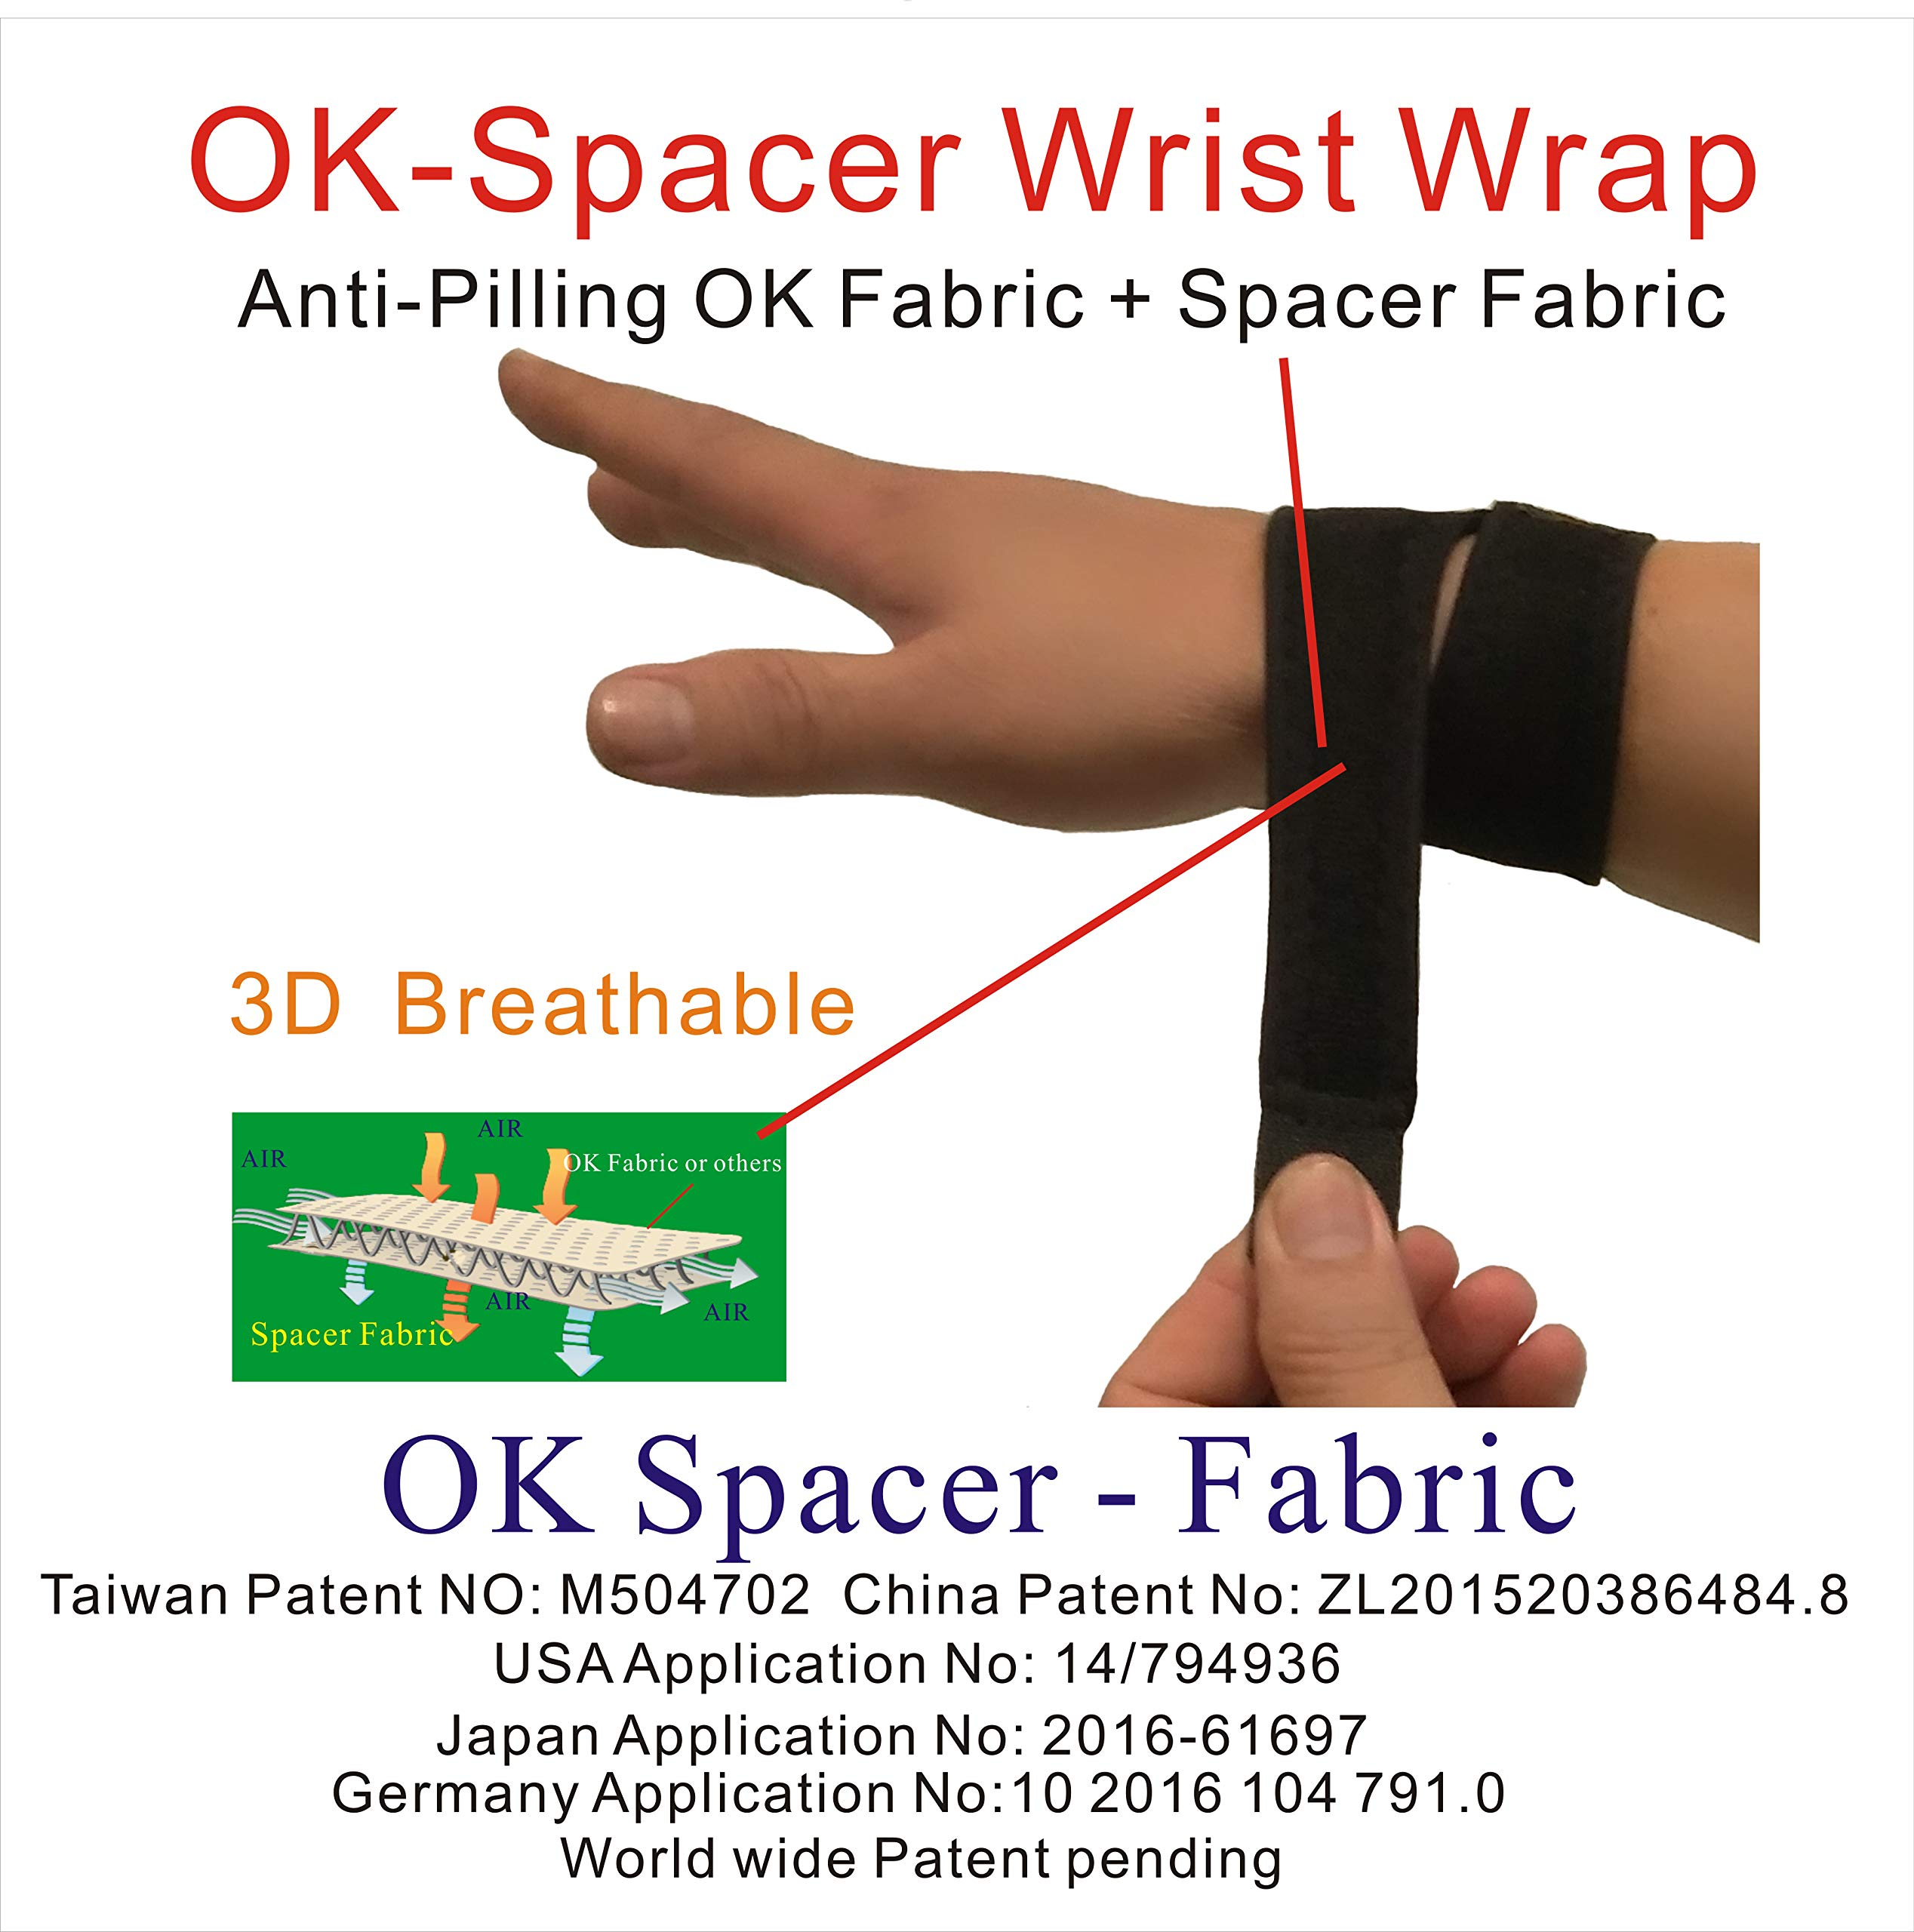 IRUFA,WR-OS-17,3D Breathable Spacer Fabric Wrist Brace, for TFCC Tear- Triangular Fibrocartilage Complex Injuries, Ulnar Sided Wrist Pain, Weight Bearing Strain, One PCS (Spacer Fabric) by IRUFA (Image #5)